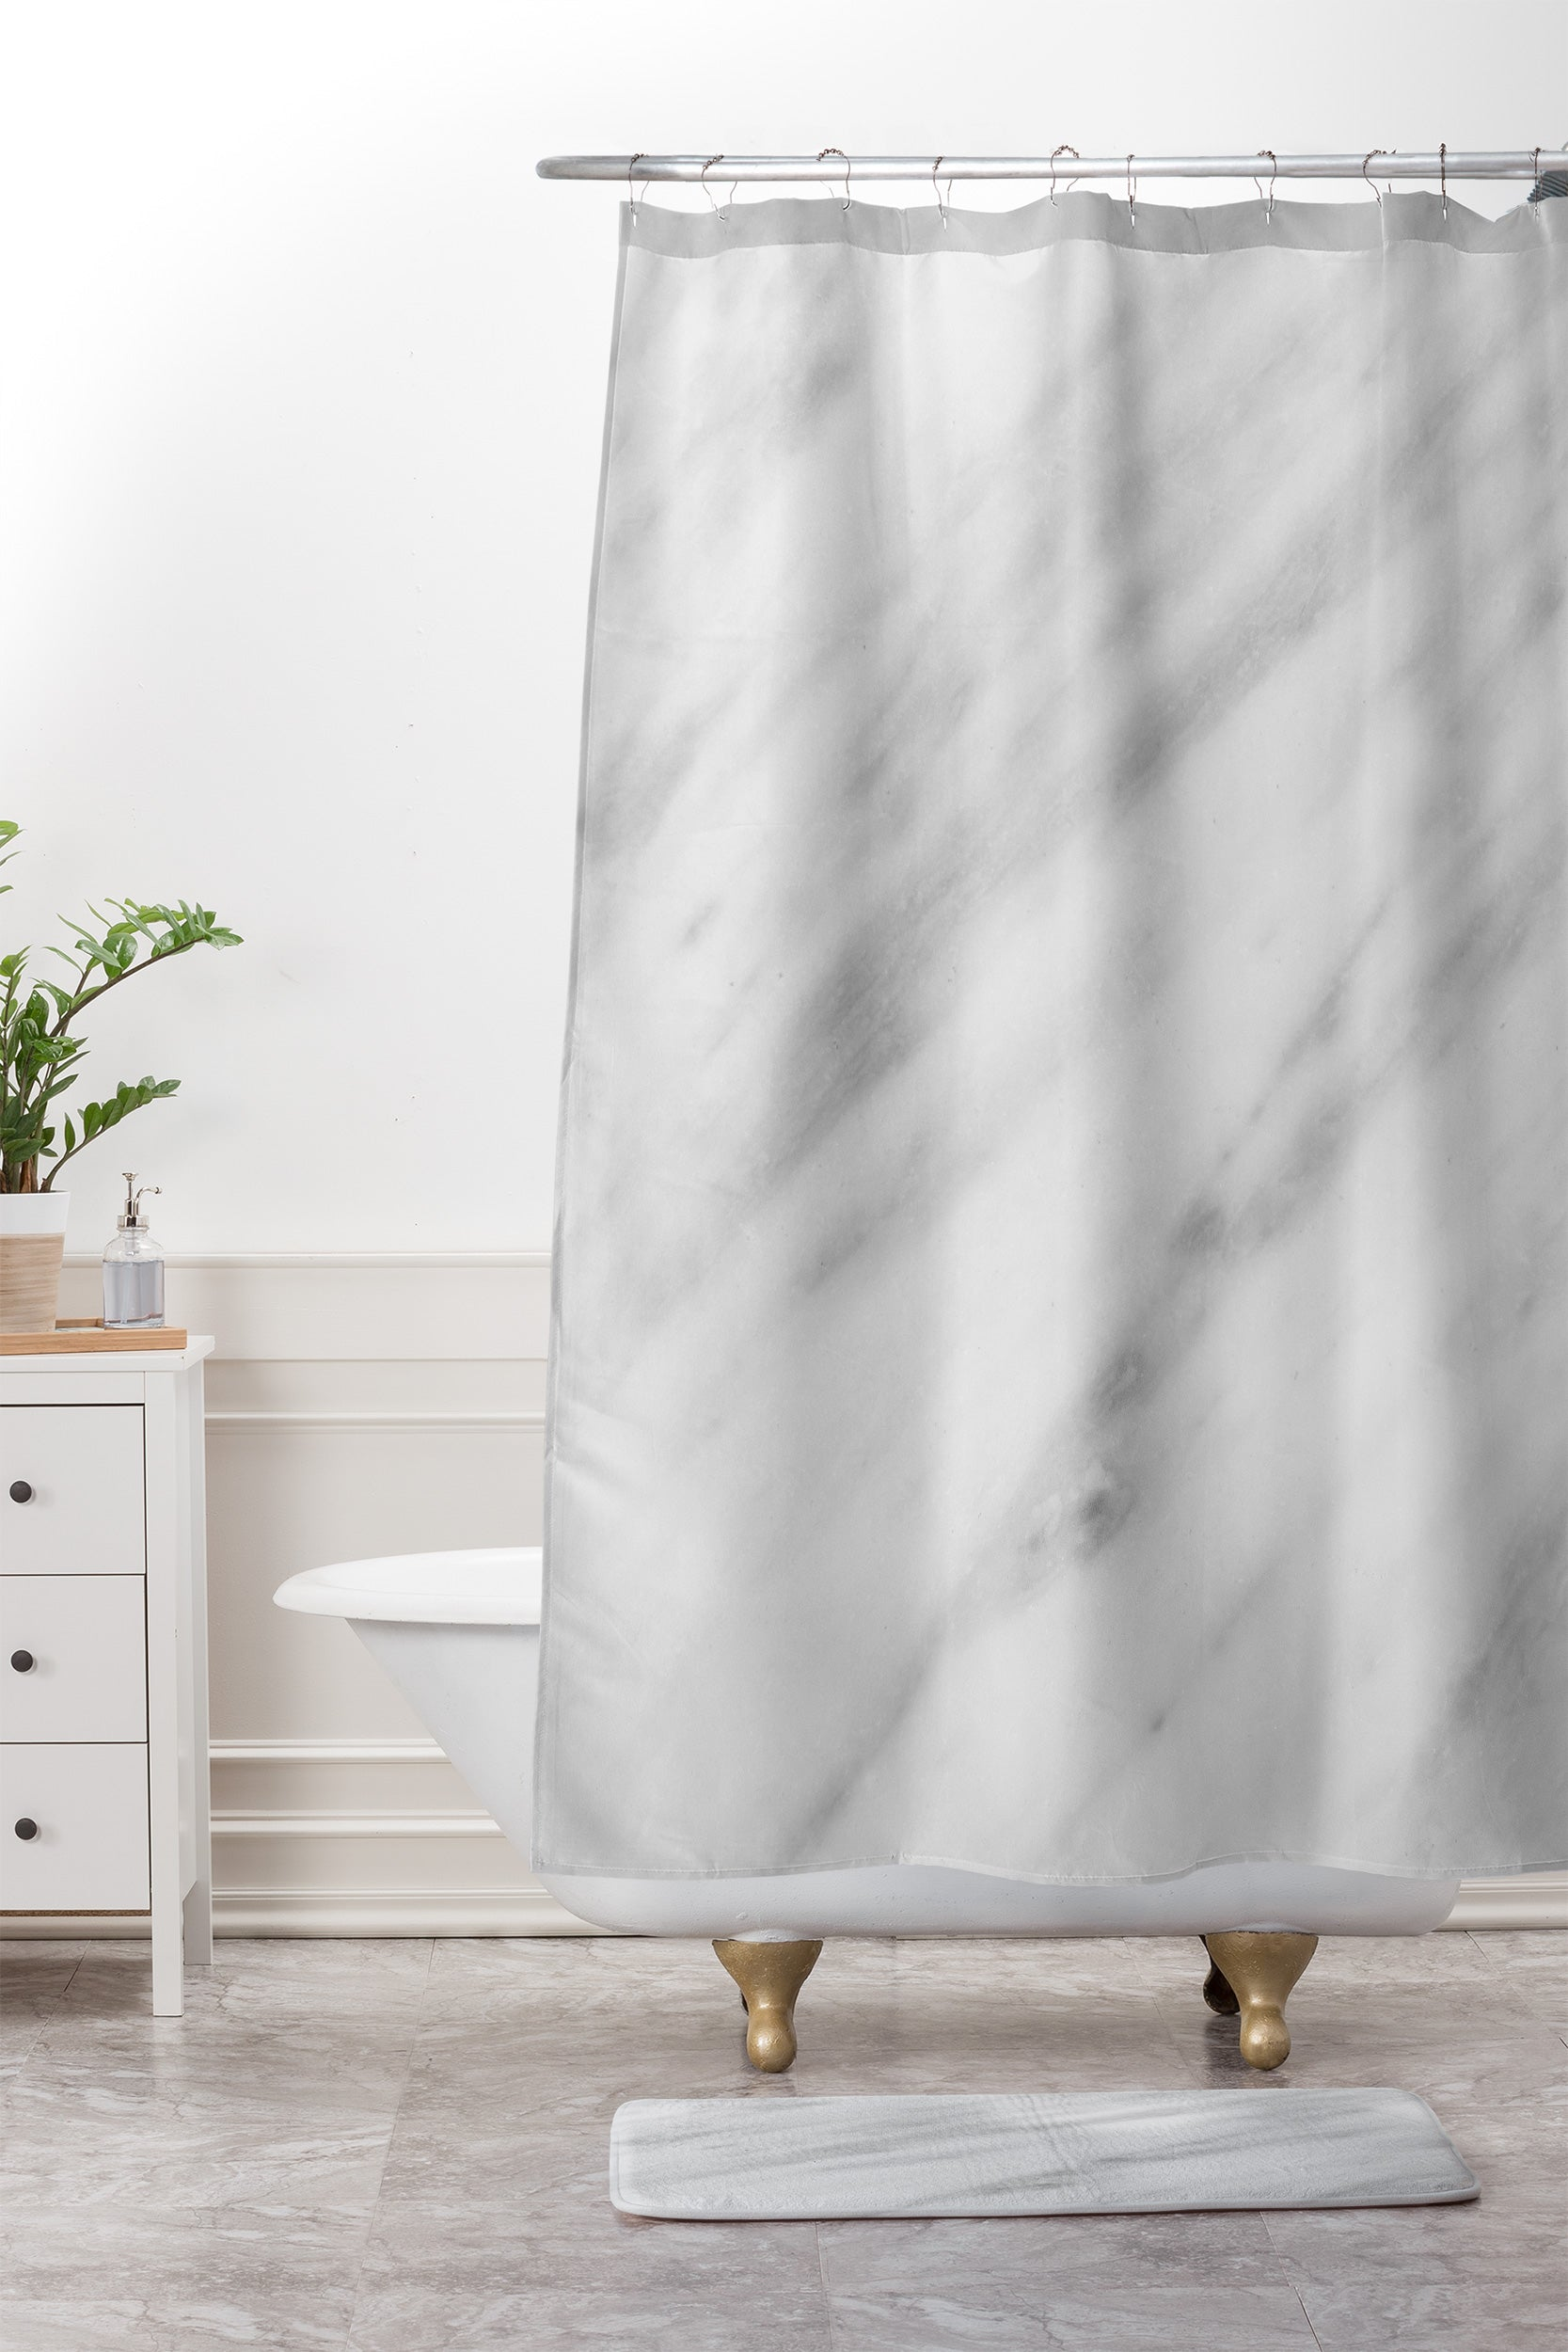 Emanuela Carratoni Italian Marble Carrara Shower Curtain And Mat